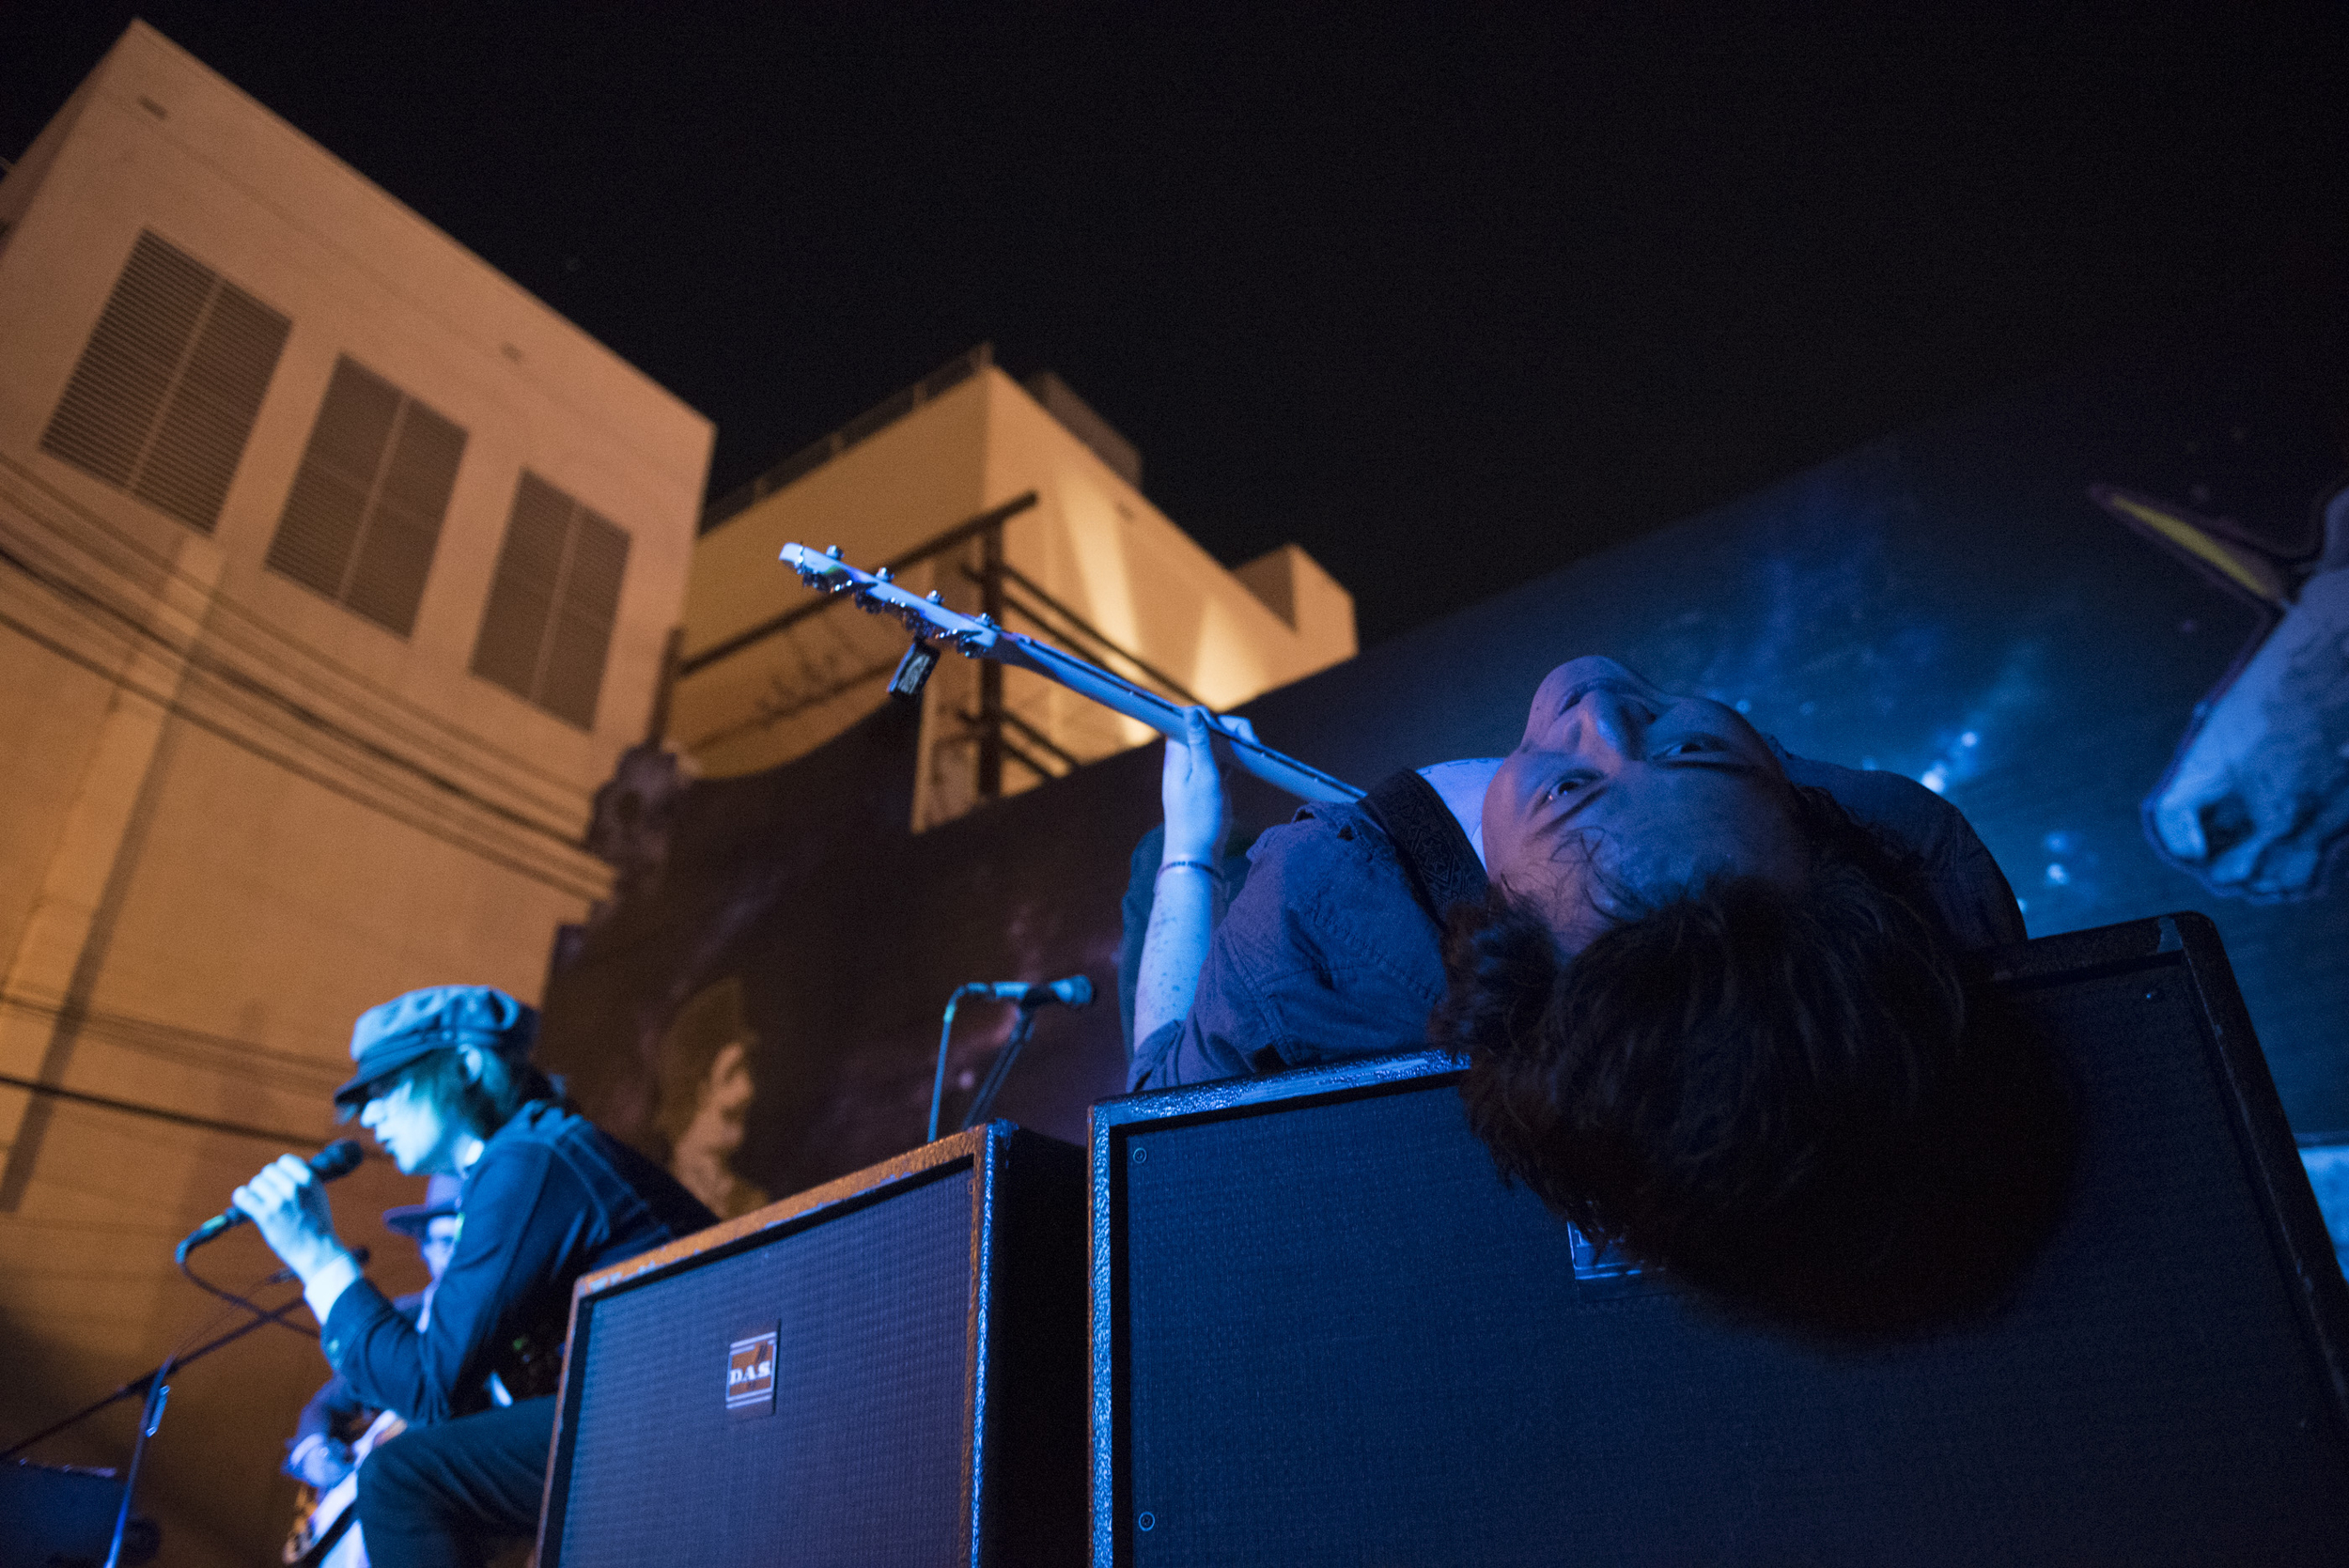 The Astaires performs at Beauty Bar during the third night of the Neon Reverb music festival in downtown Las Vegas Saturday, March 12, 2016. The multi-venue festival features nearly 100 performances over four nights. Jason Ogulnik/Las Vegas Review-Journal